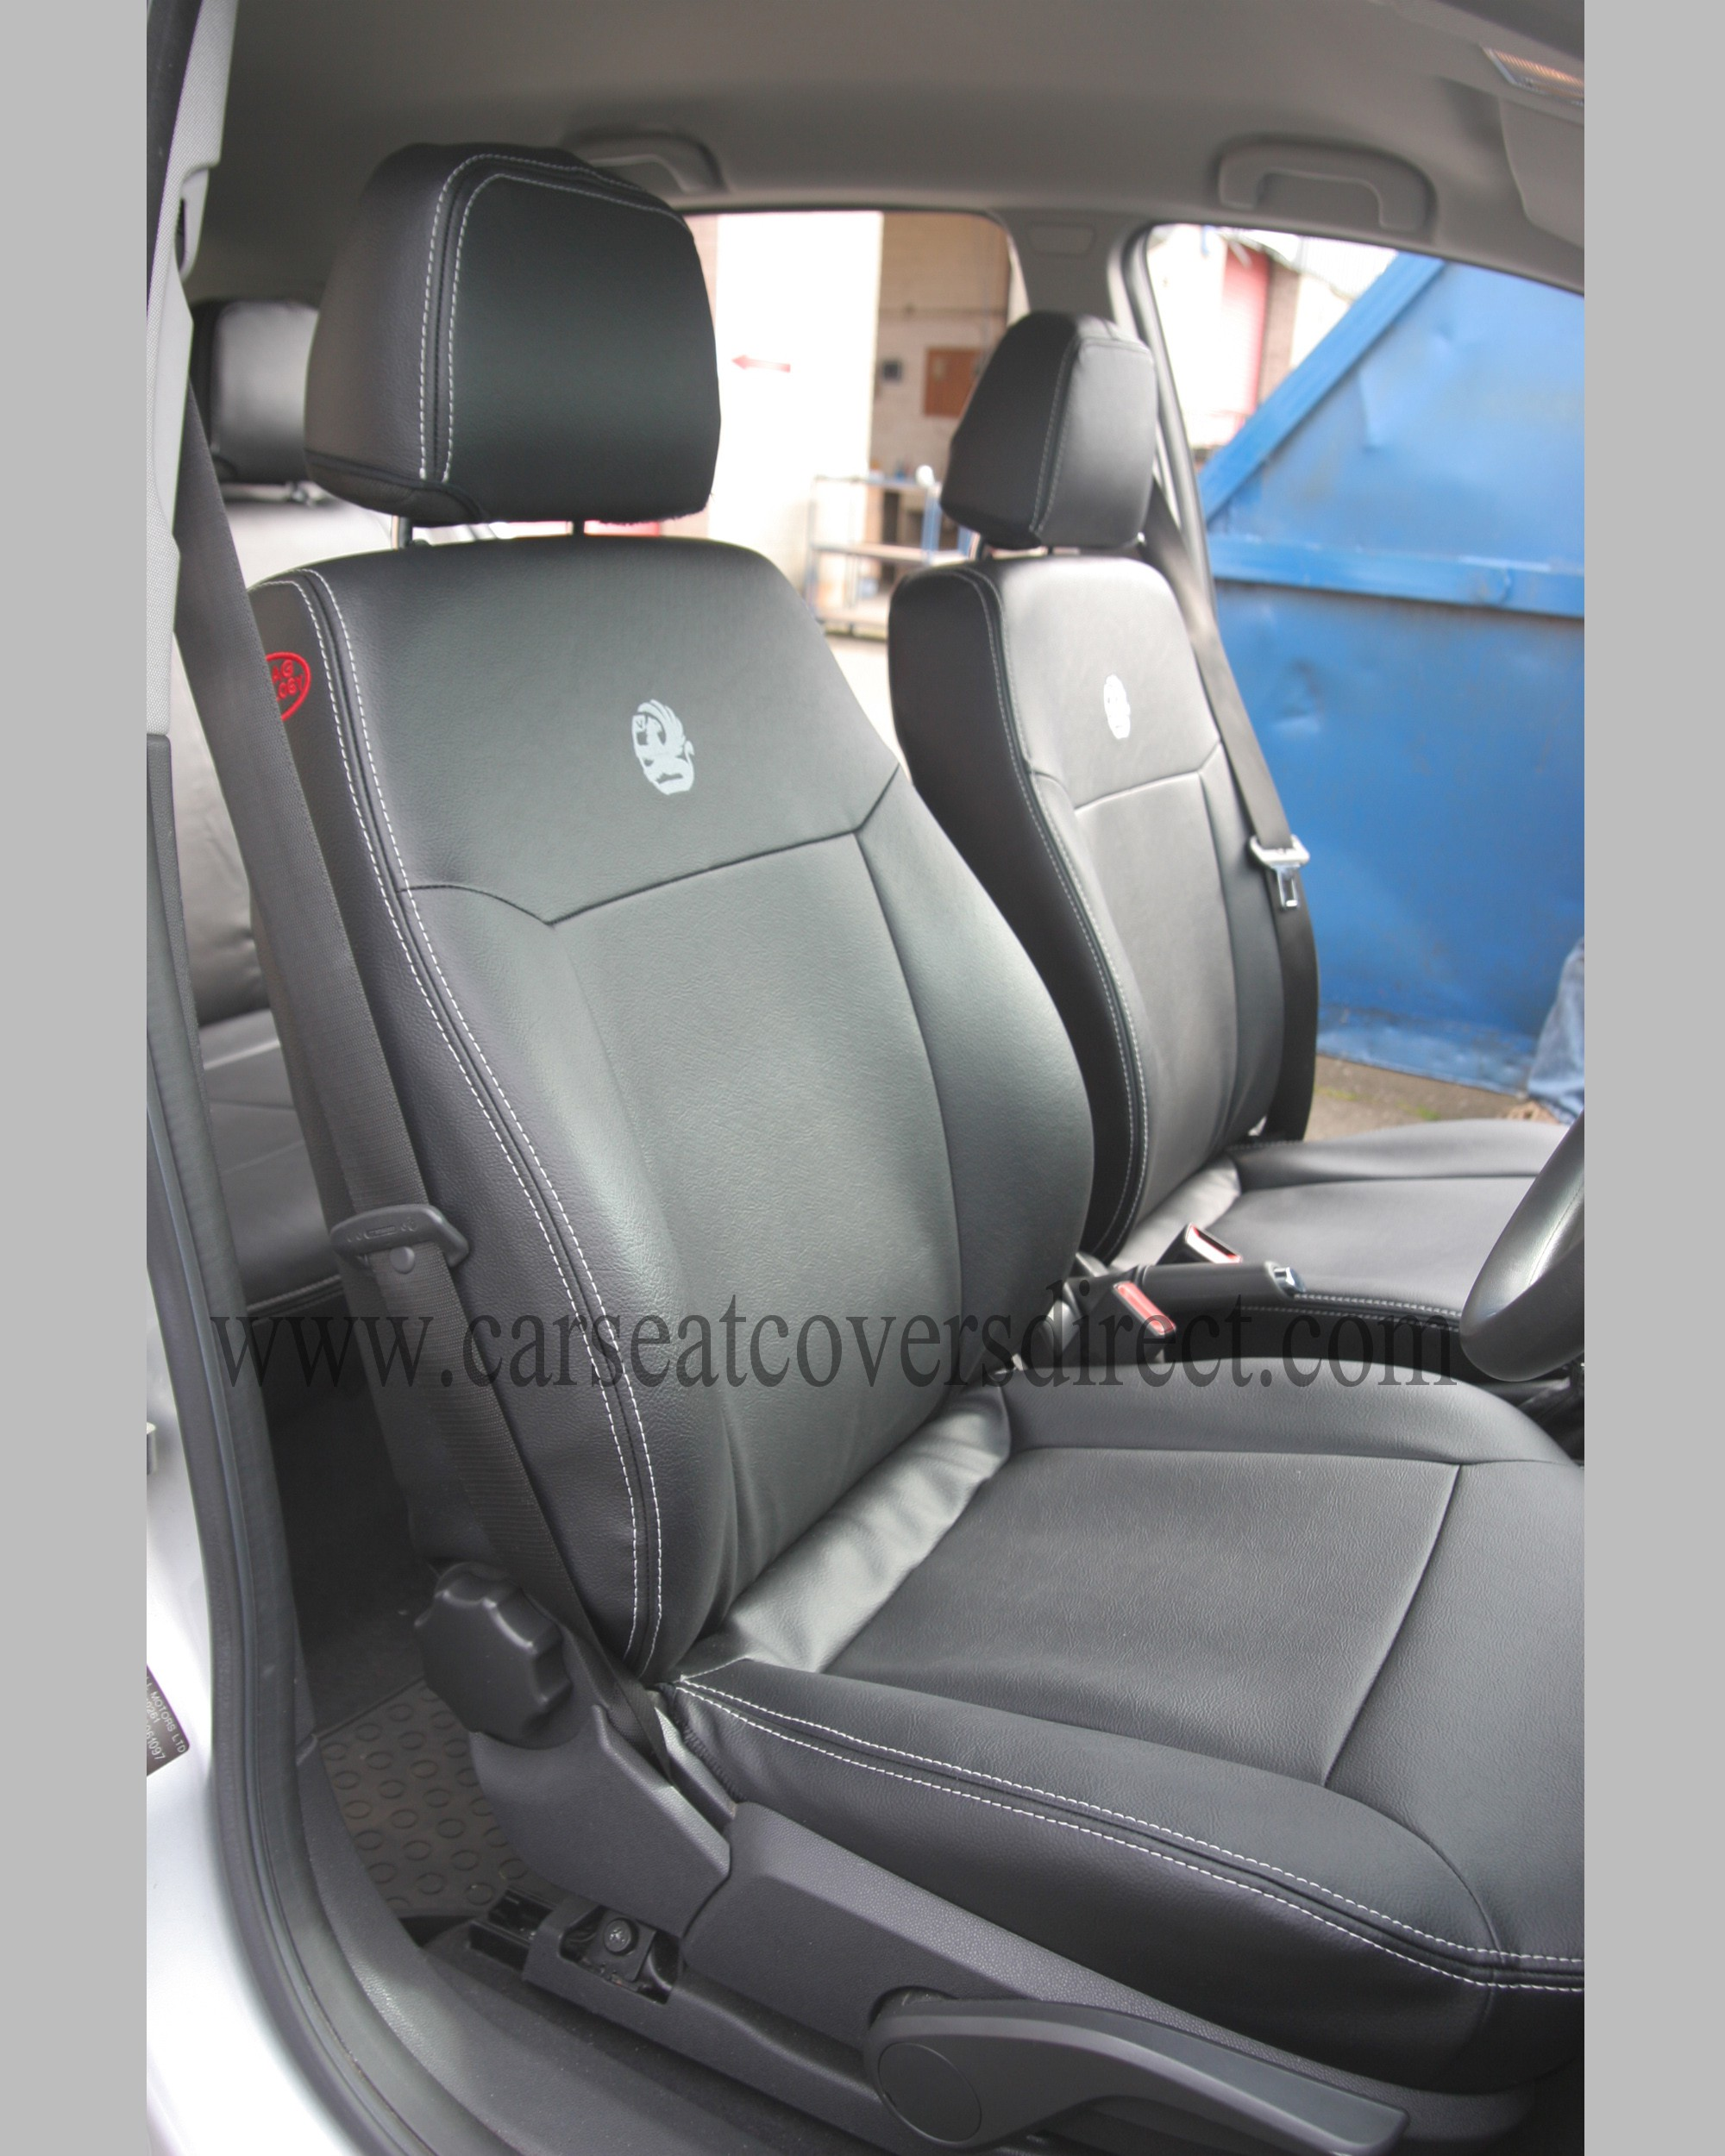 OPEL ASTRA H Black Seat Covers Car Seat Covers Direct - Tailored To